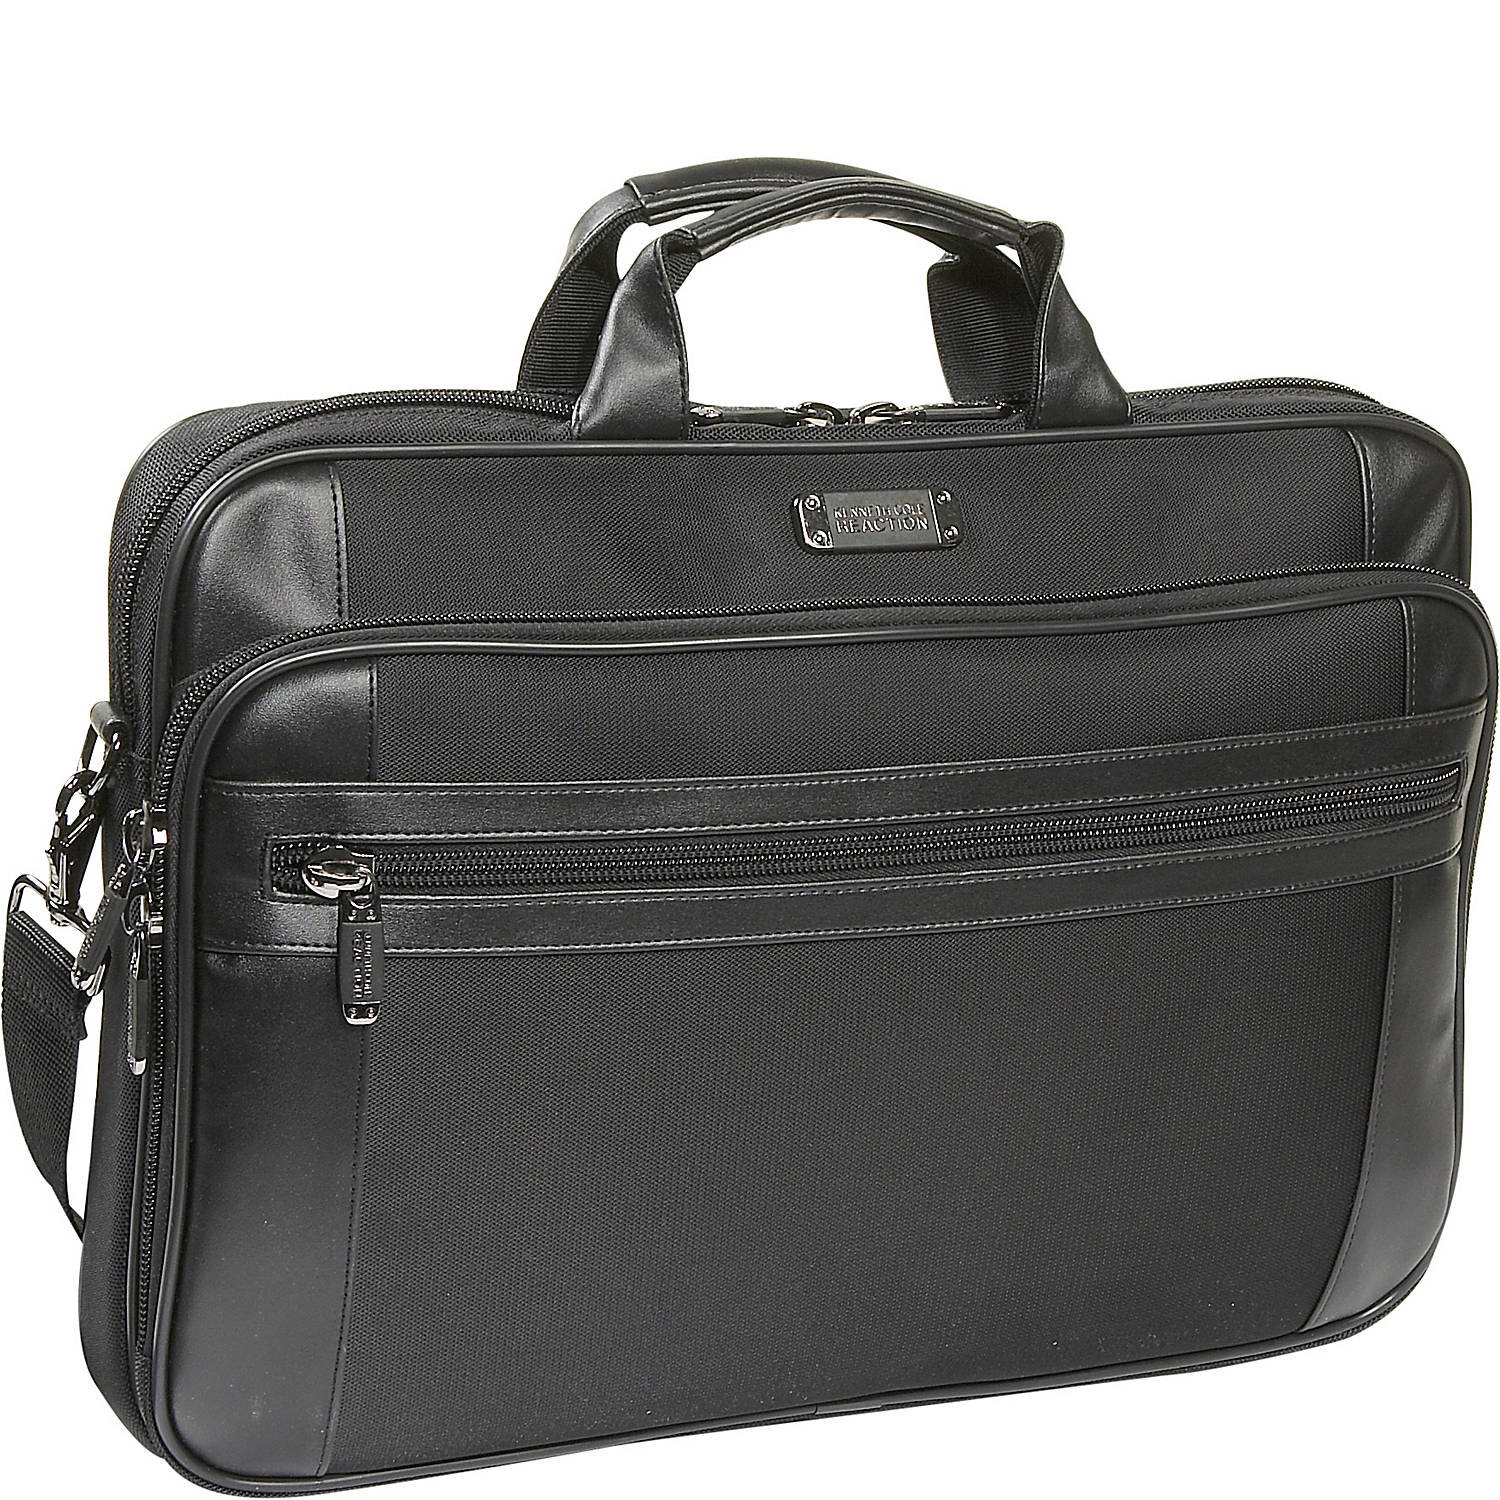 "Kenneth Cole Reaction 18.4"" Slim Top Zip Laptop Portfolio Laptop Bag, Black"